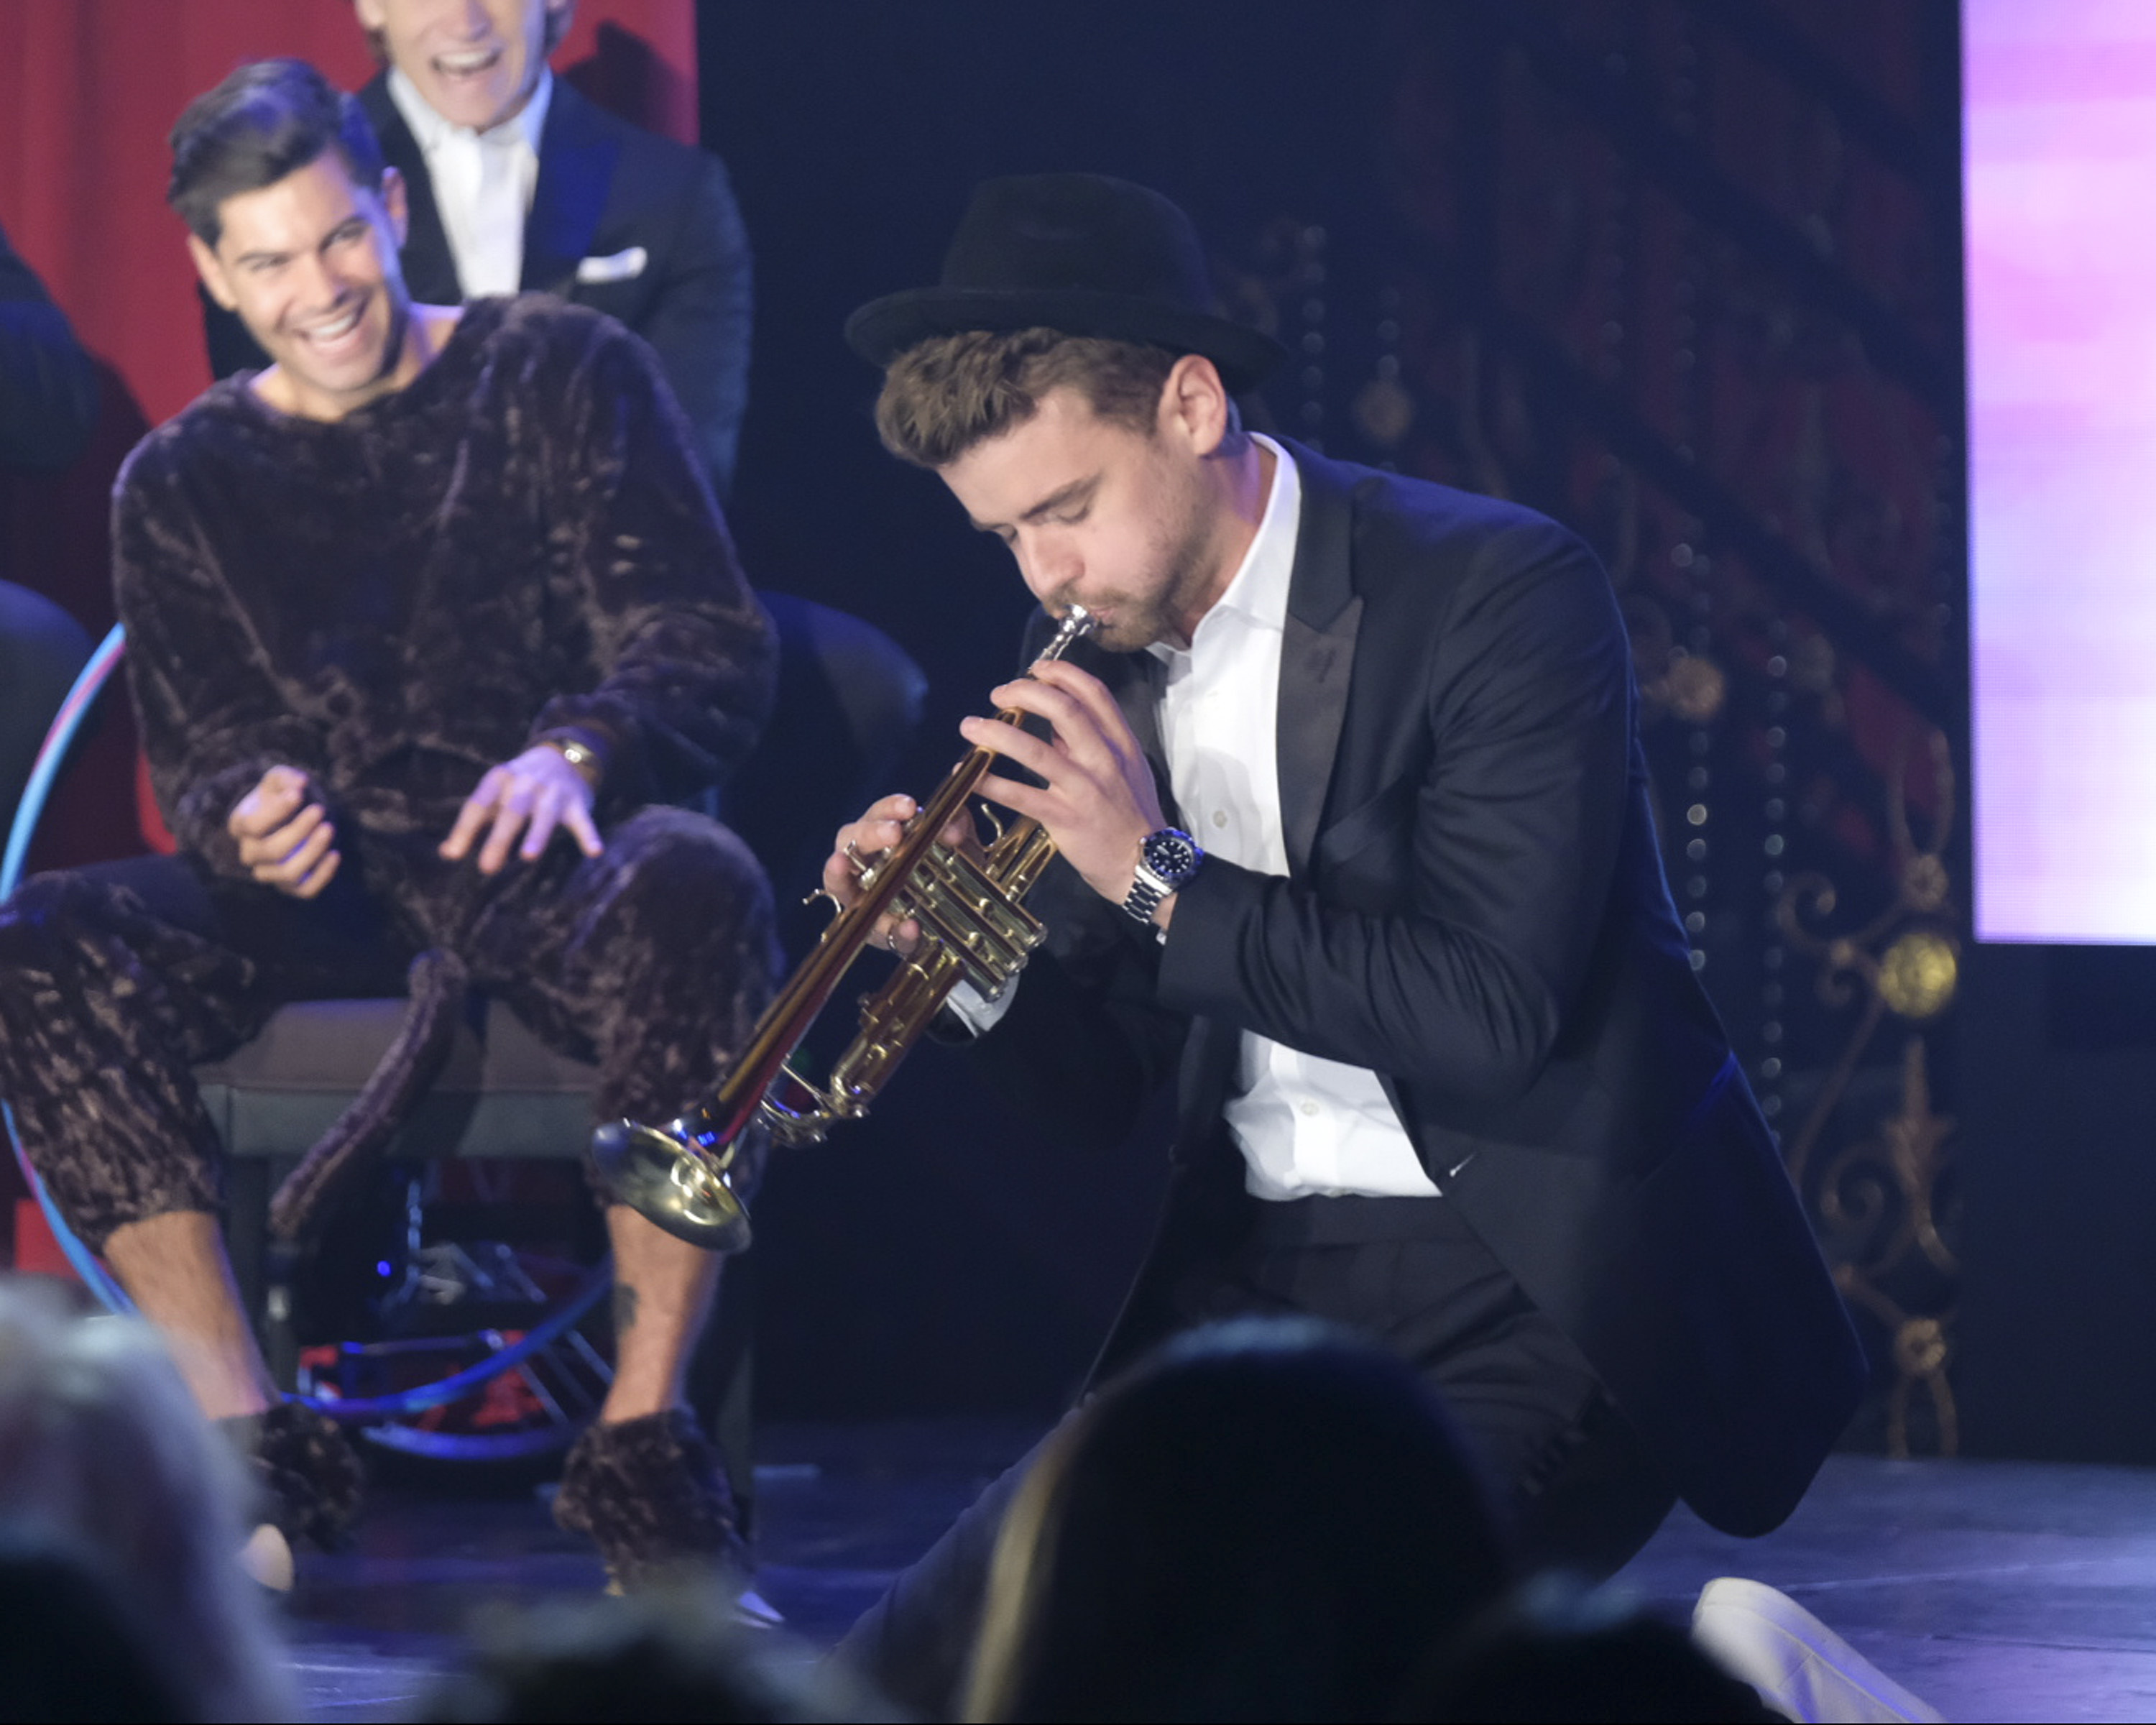 For his talent, it looks like Local Luke will be serenading us with some sweet, sweet jazz. (Image: John Fleenor/ ABC)